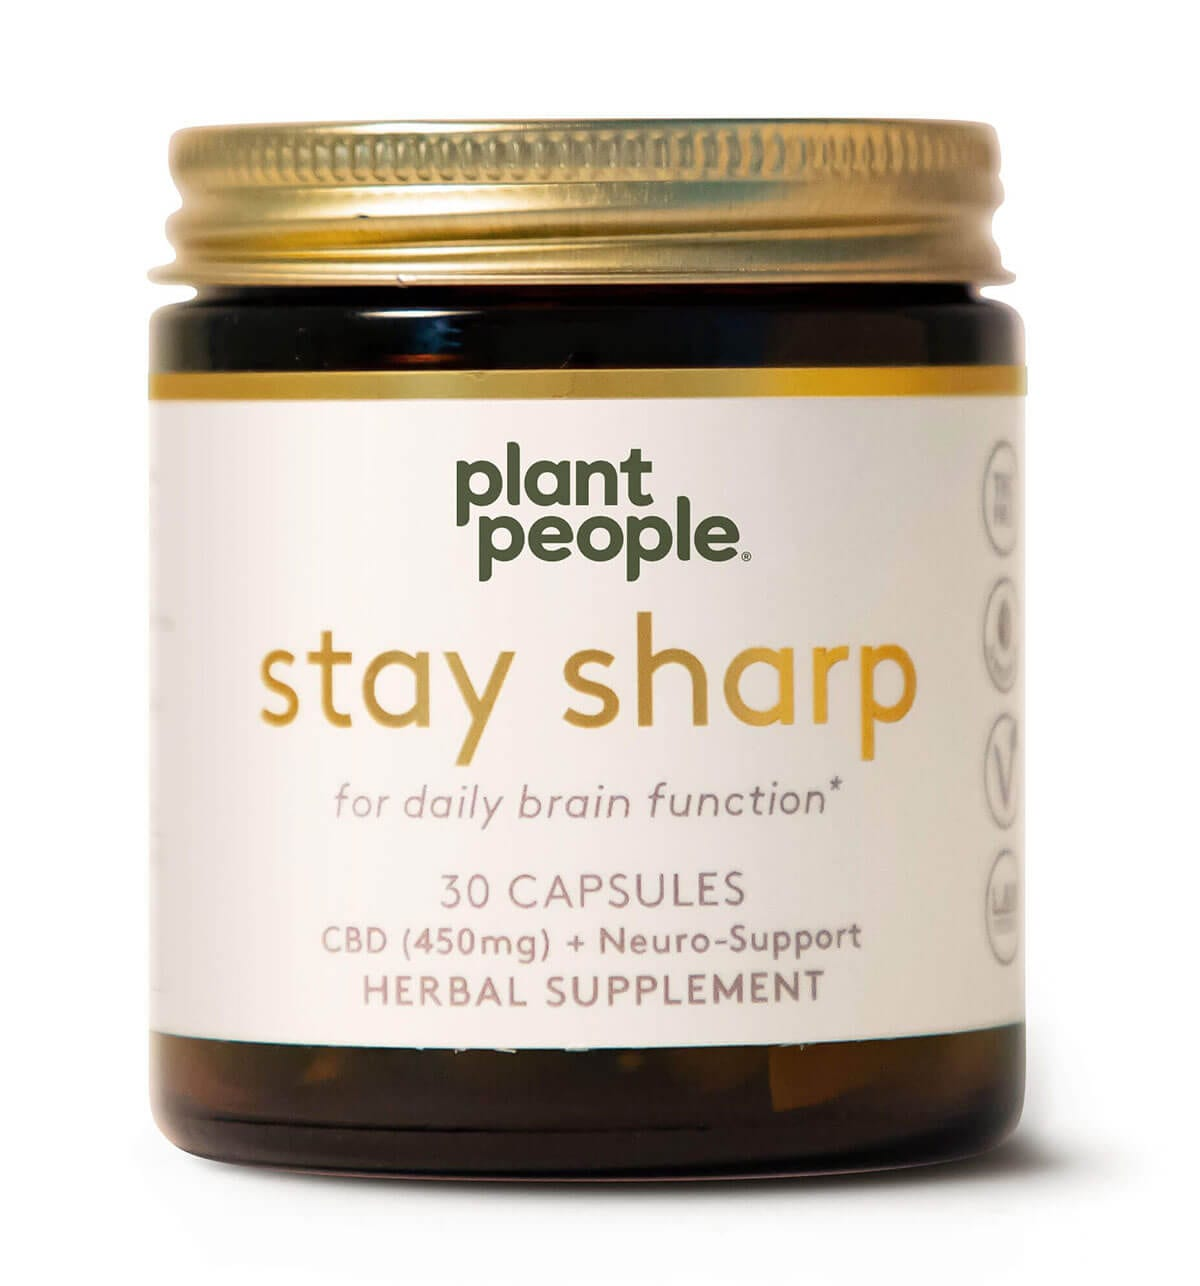 Stay Sharp CBD Capsules